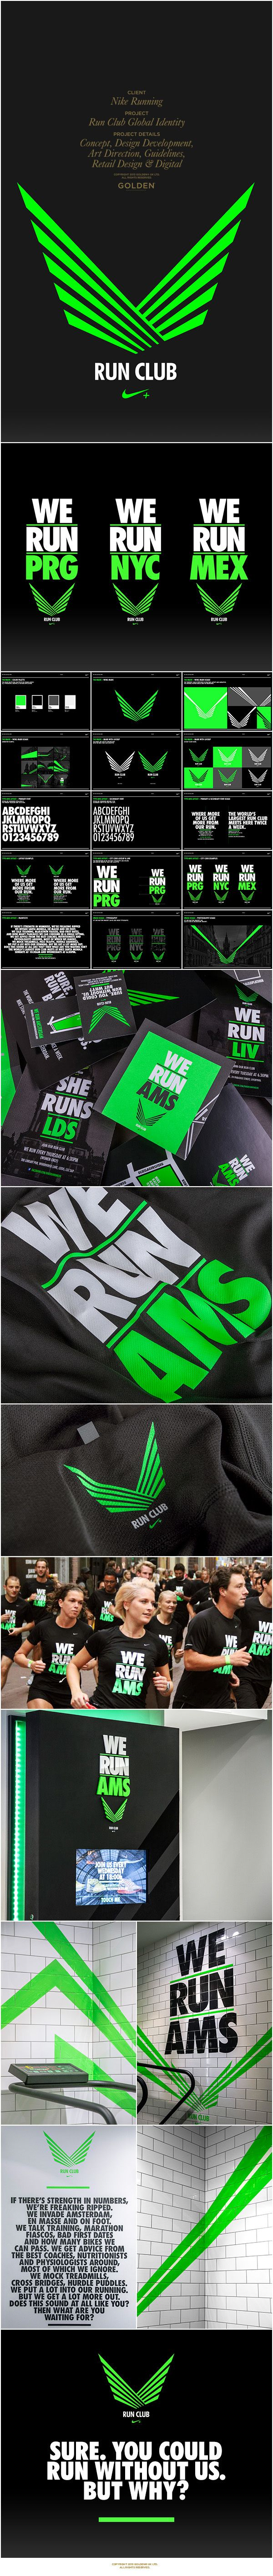 Nike Run Club by GOLDEN #branding #brandidentity